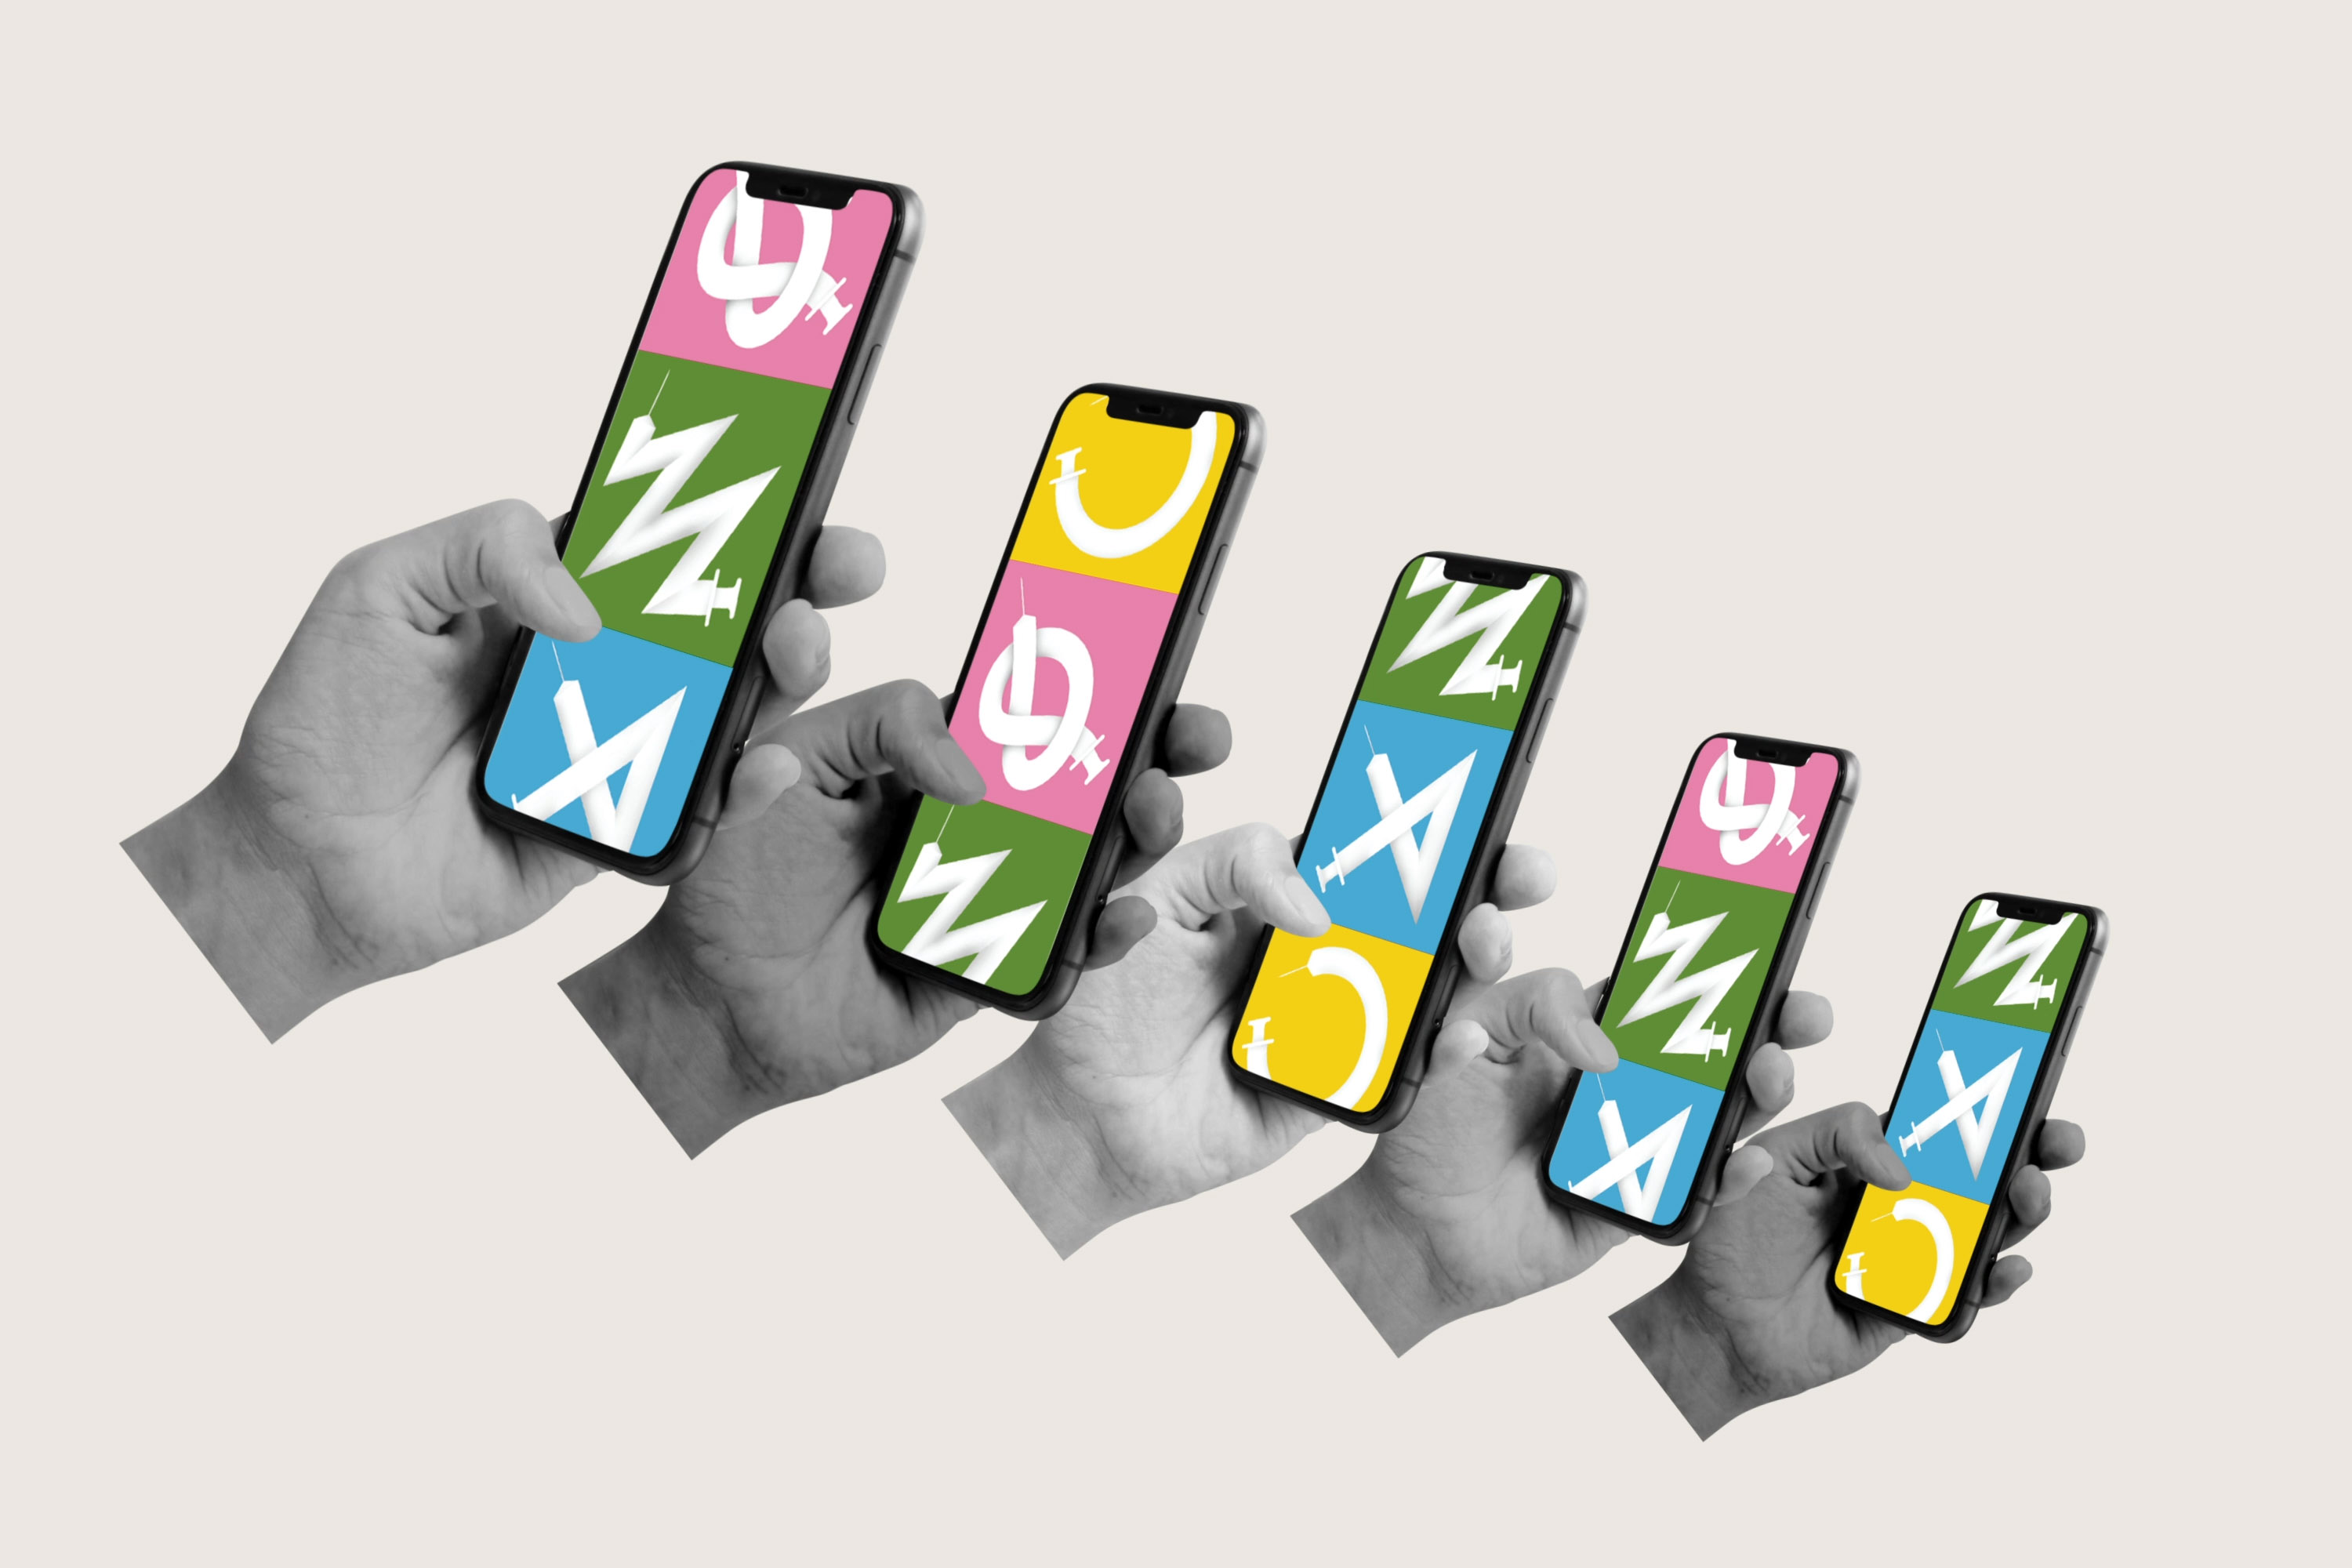 An illustration of five hands, each scrolling through images of syringes twisted out of shape on mobile phones.